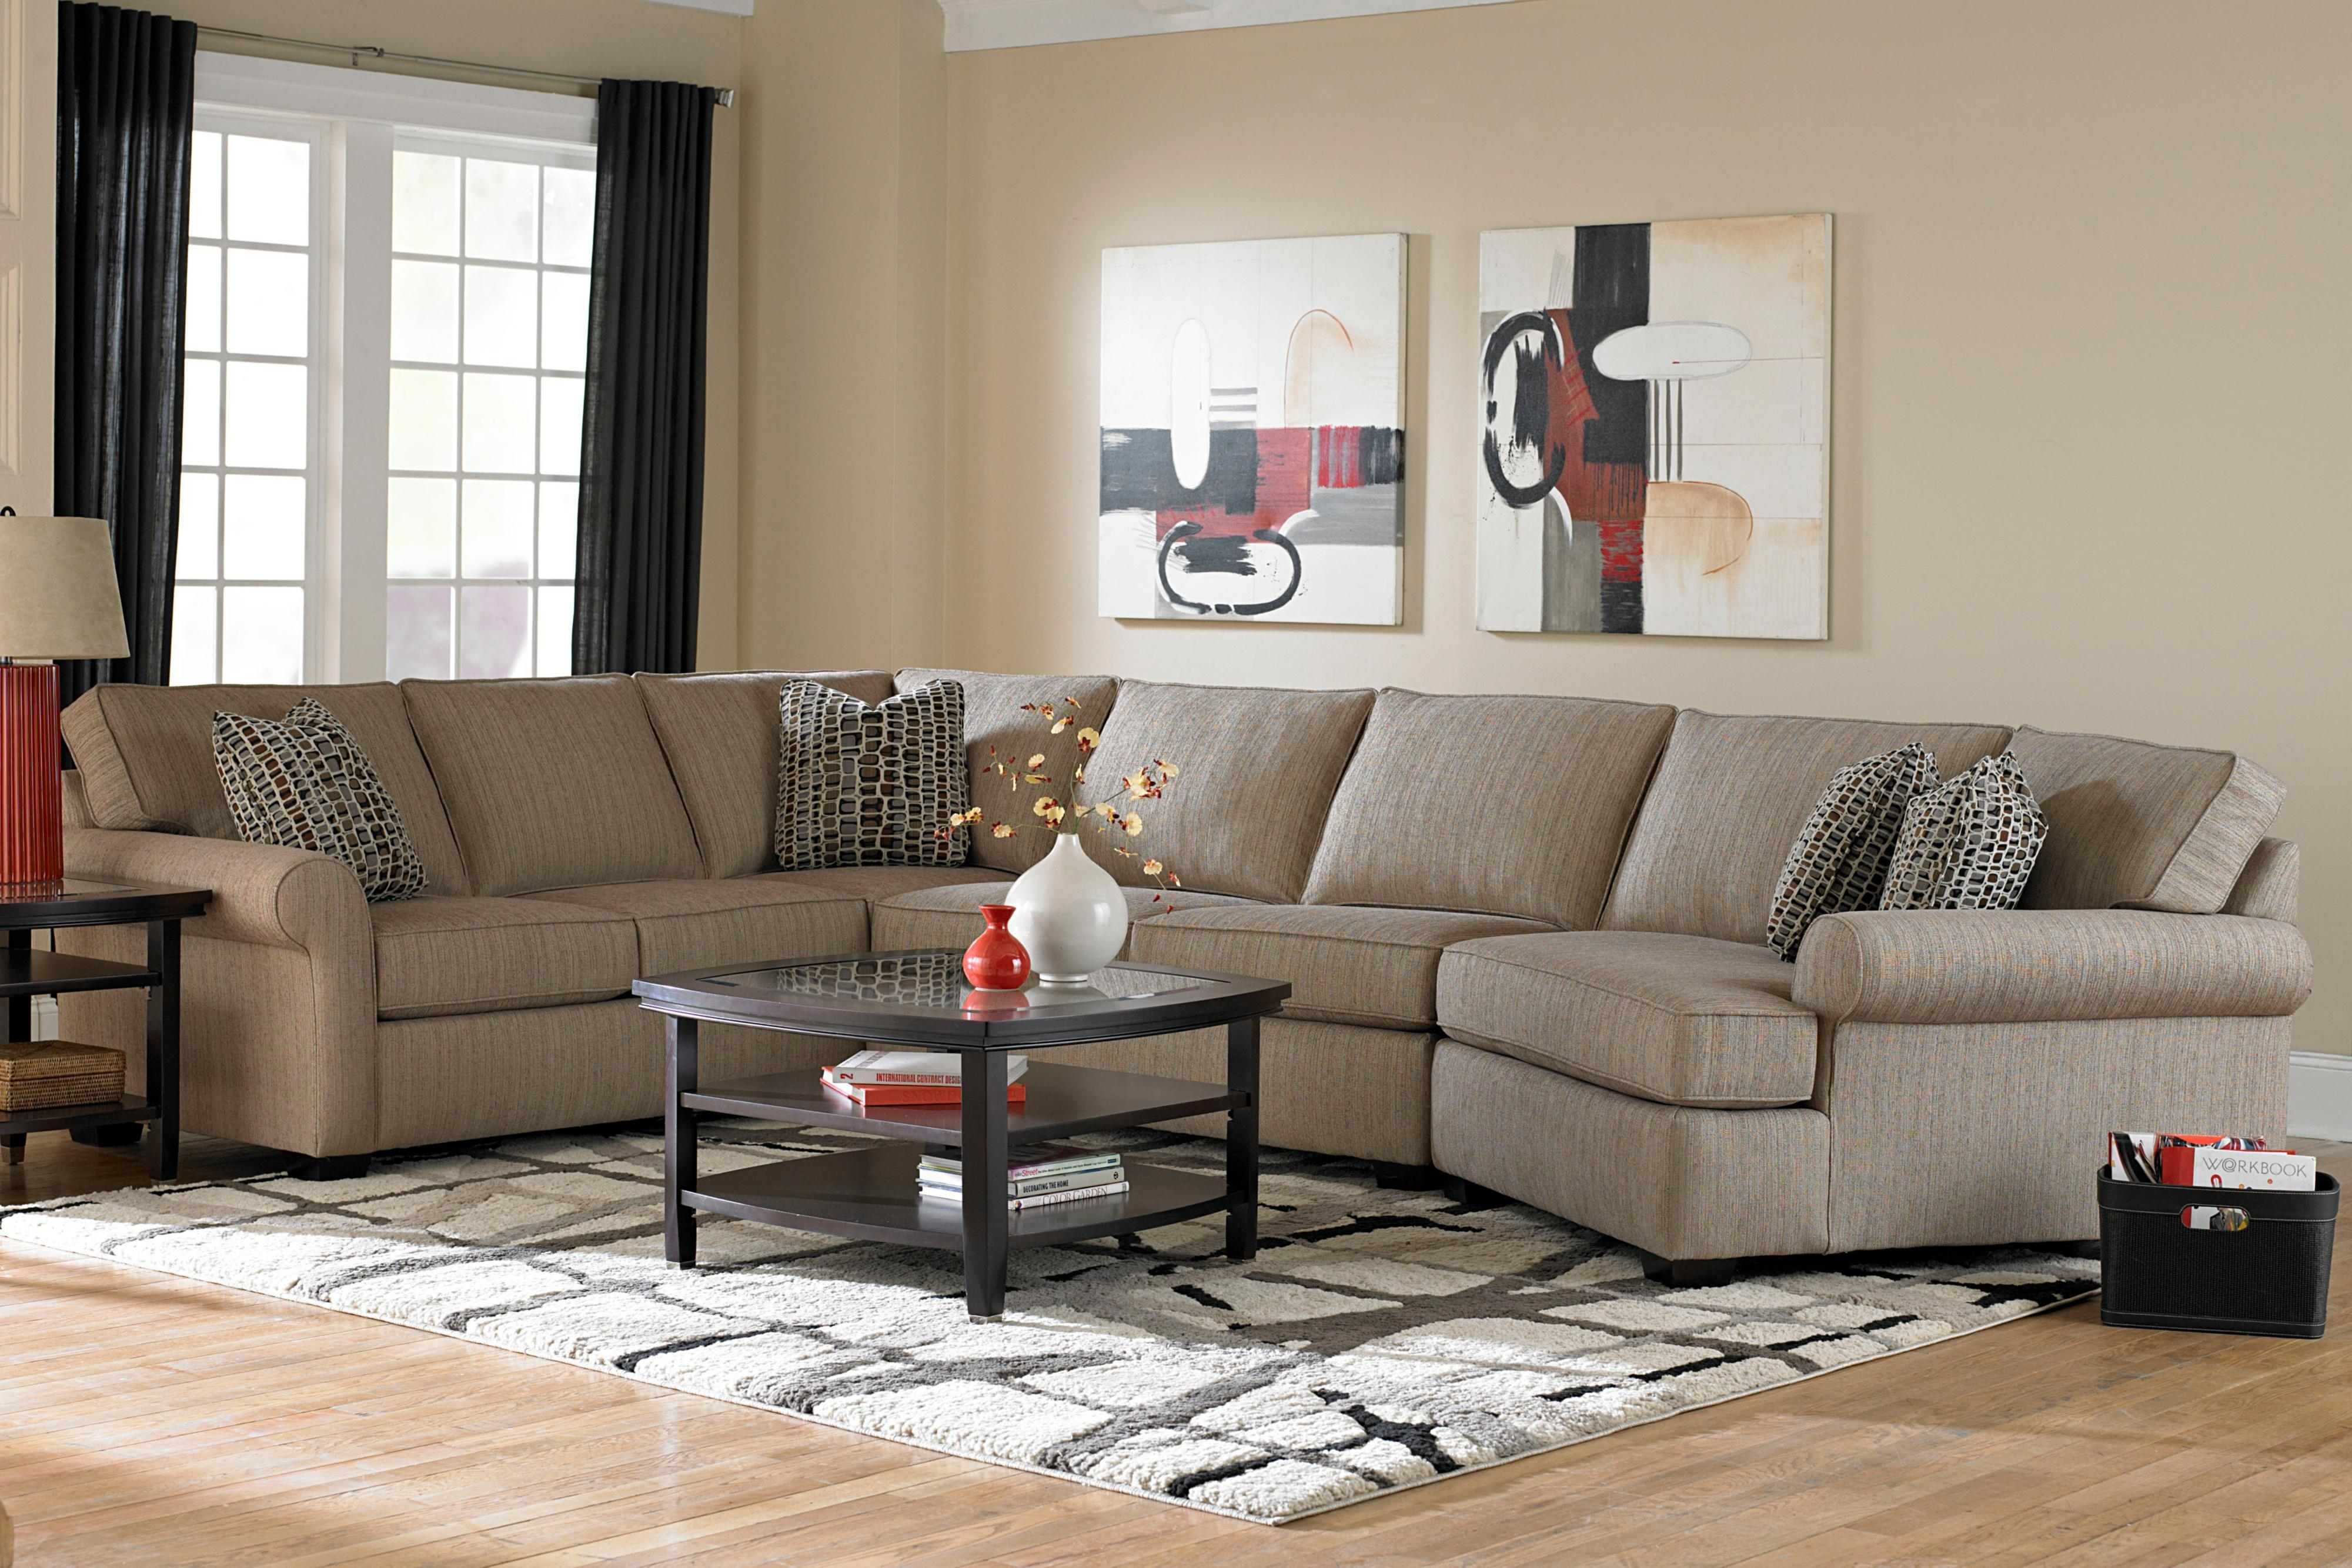 Broyhill Furniture Ethan Transitional Sectional Sofa With Right with regard to Jacksonville Nc Sectional Sofas (Image 1 of 10)